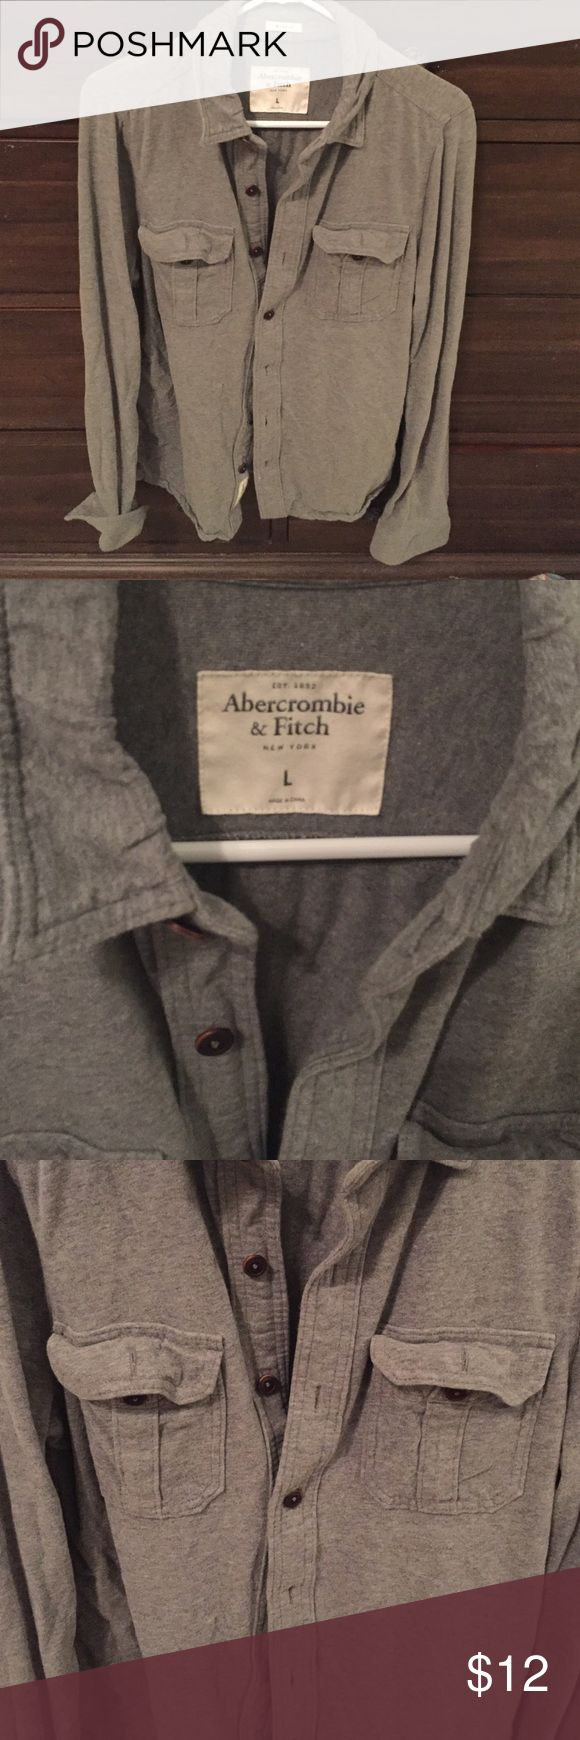 Abercrombie and Fitch Mens gray button down Gray tshirt cotton button down Abercrombie and Fitch 2 front pockets; brown buttons Abercrombie & Fitch Shirts Casual Button Down Shirts